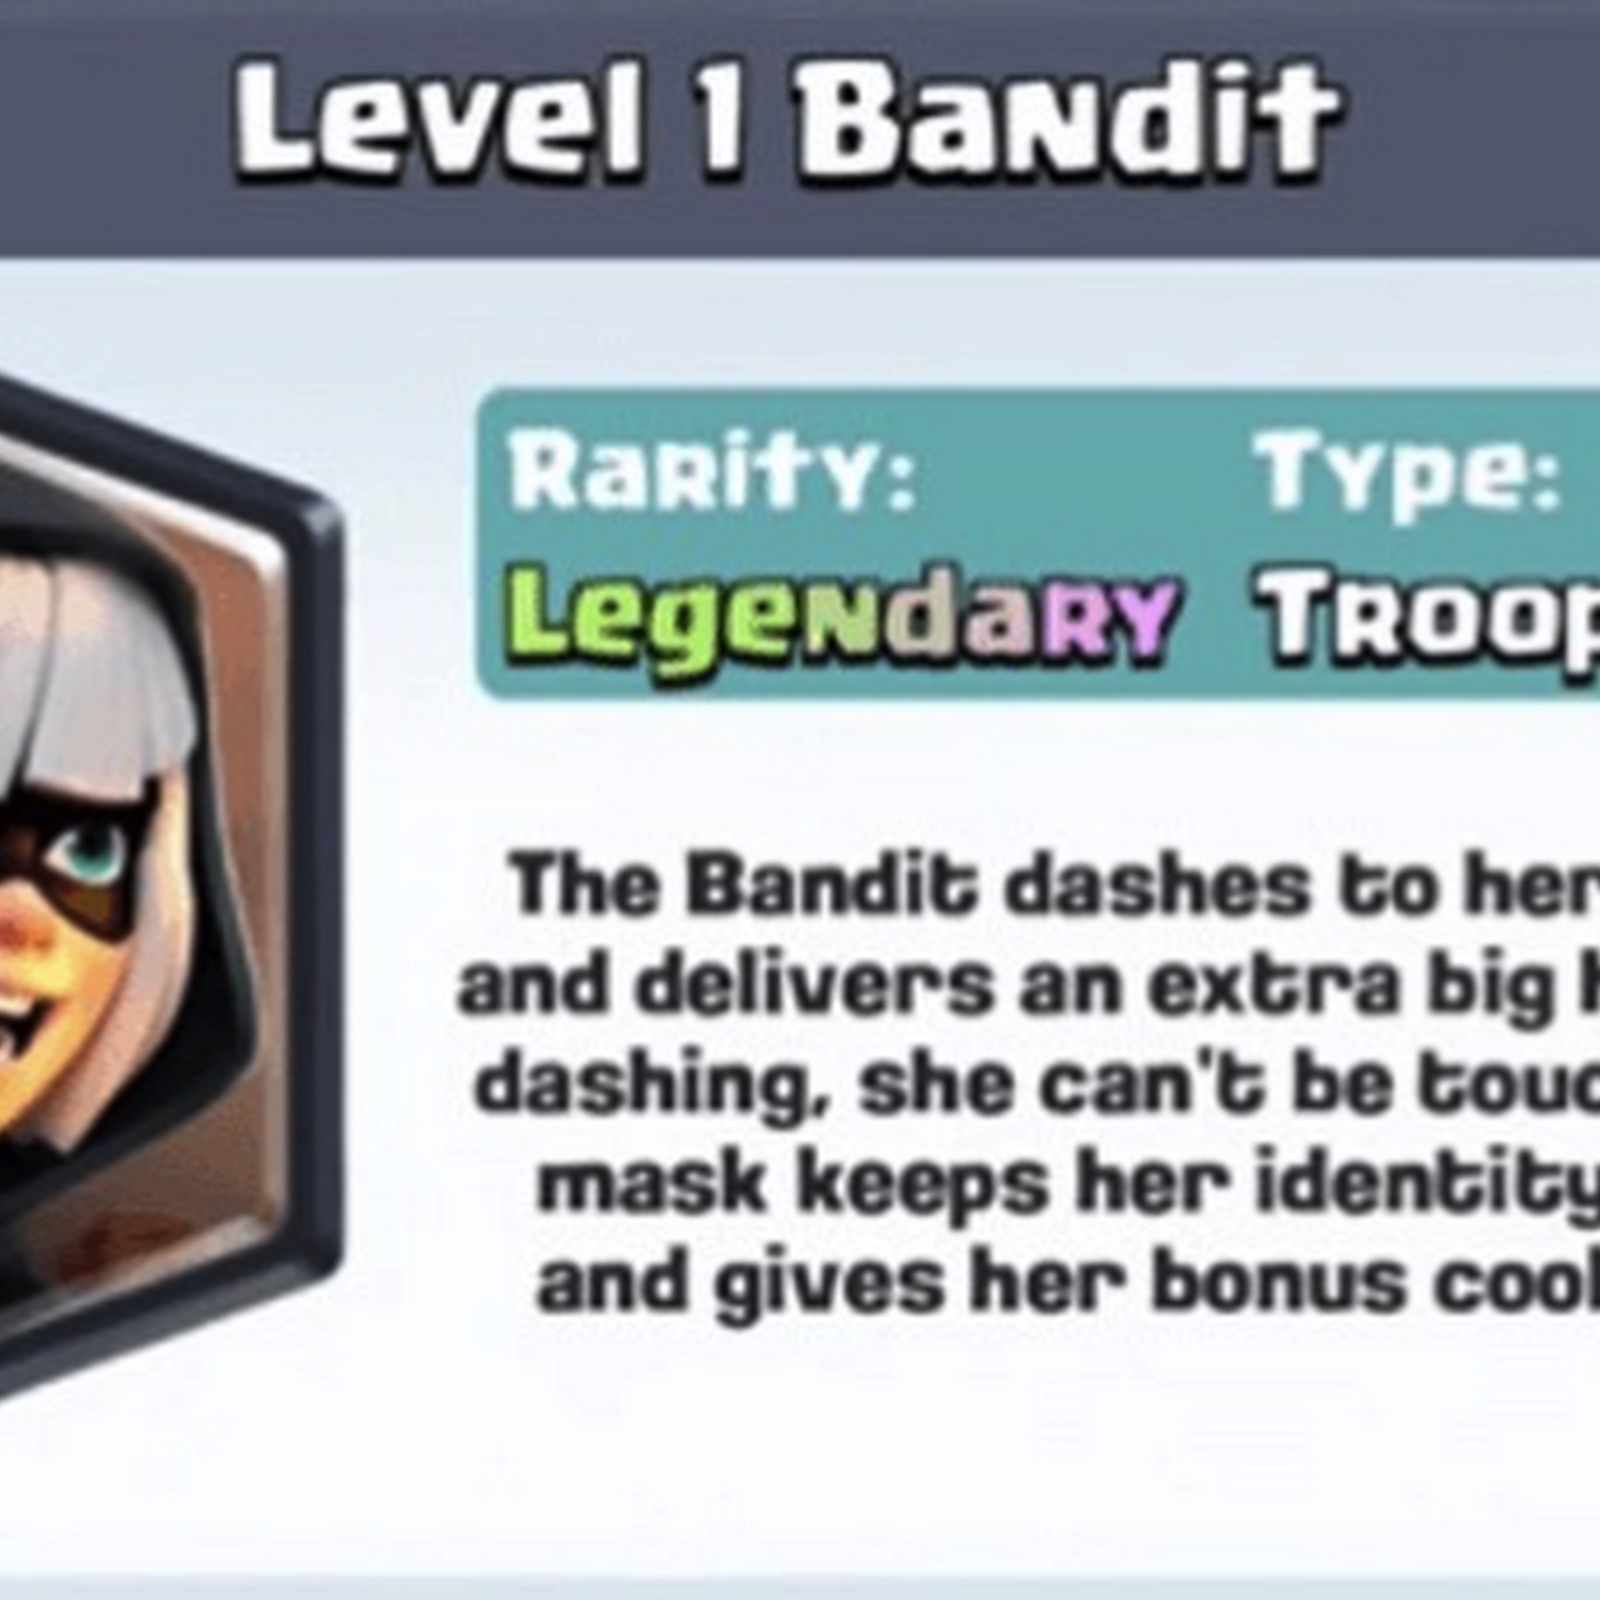 Bandit, Night Witch, Bats and Heal new card [Update]